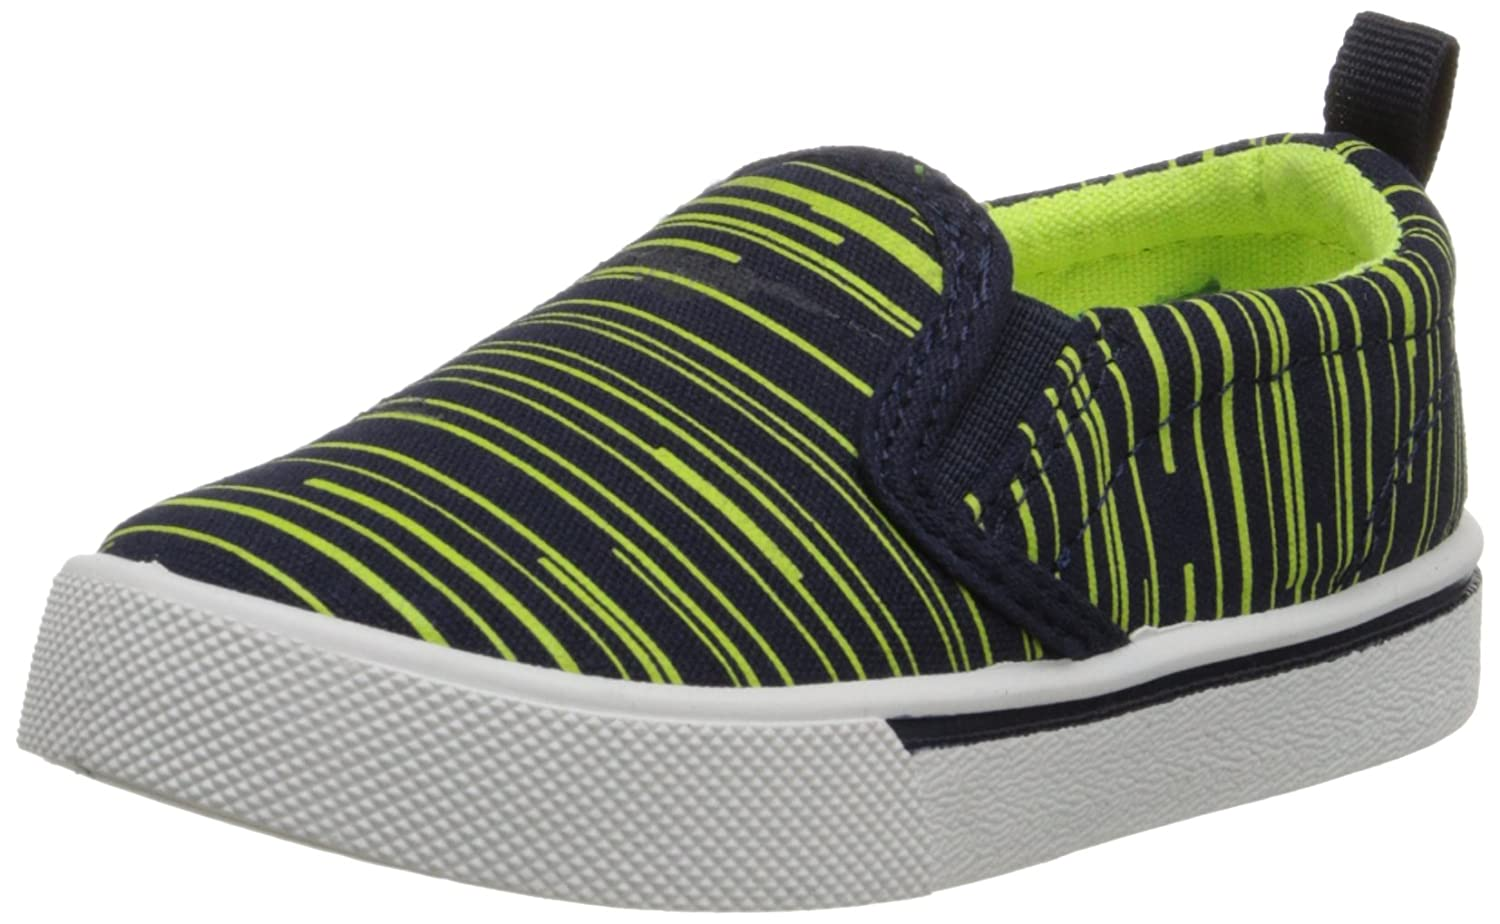 Oshkosh B'Gosh Kids' AUSTIN Slip-On OshKosh B' Gosh